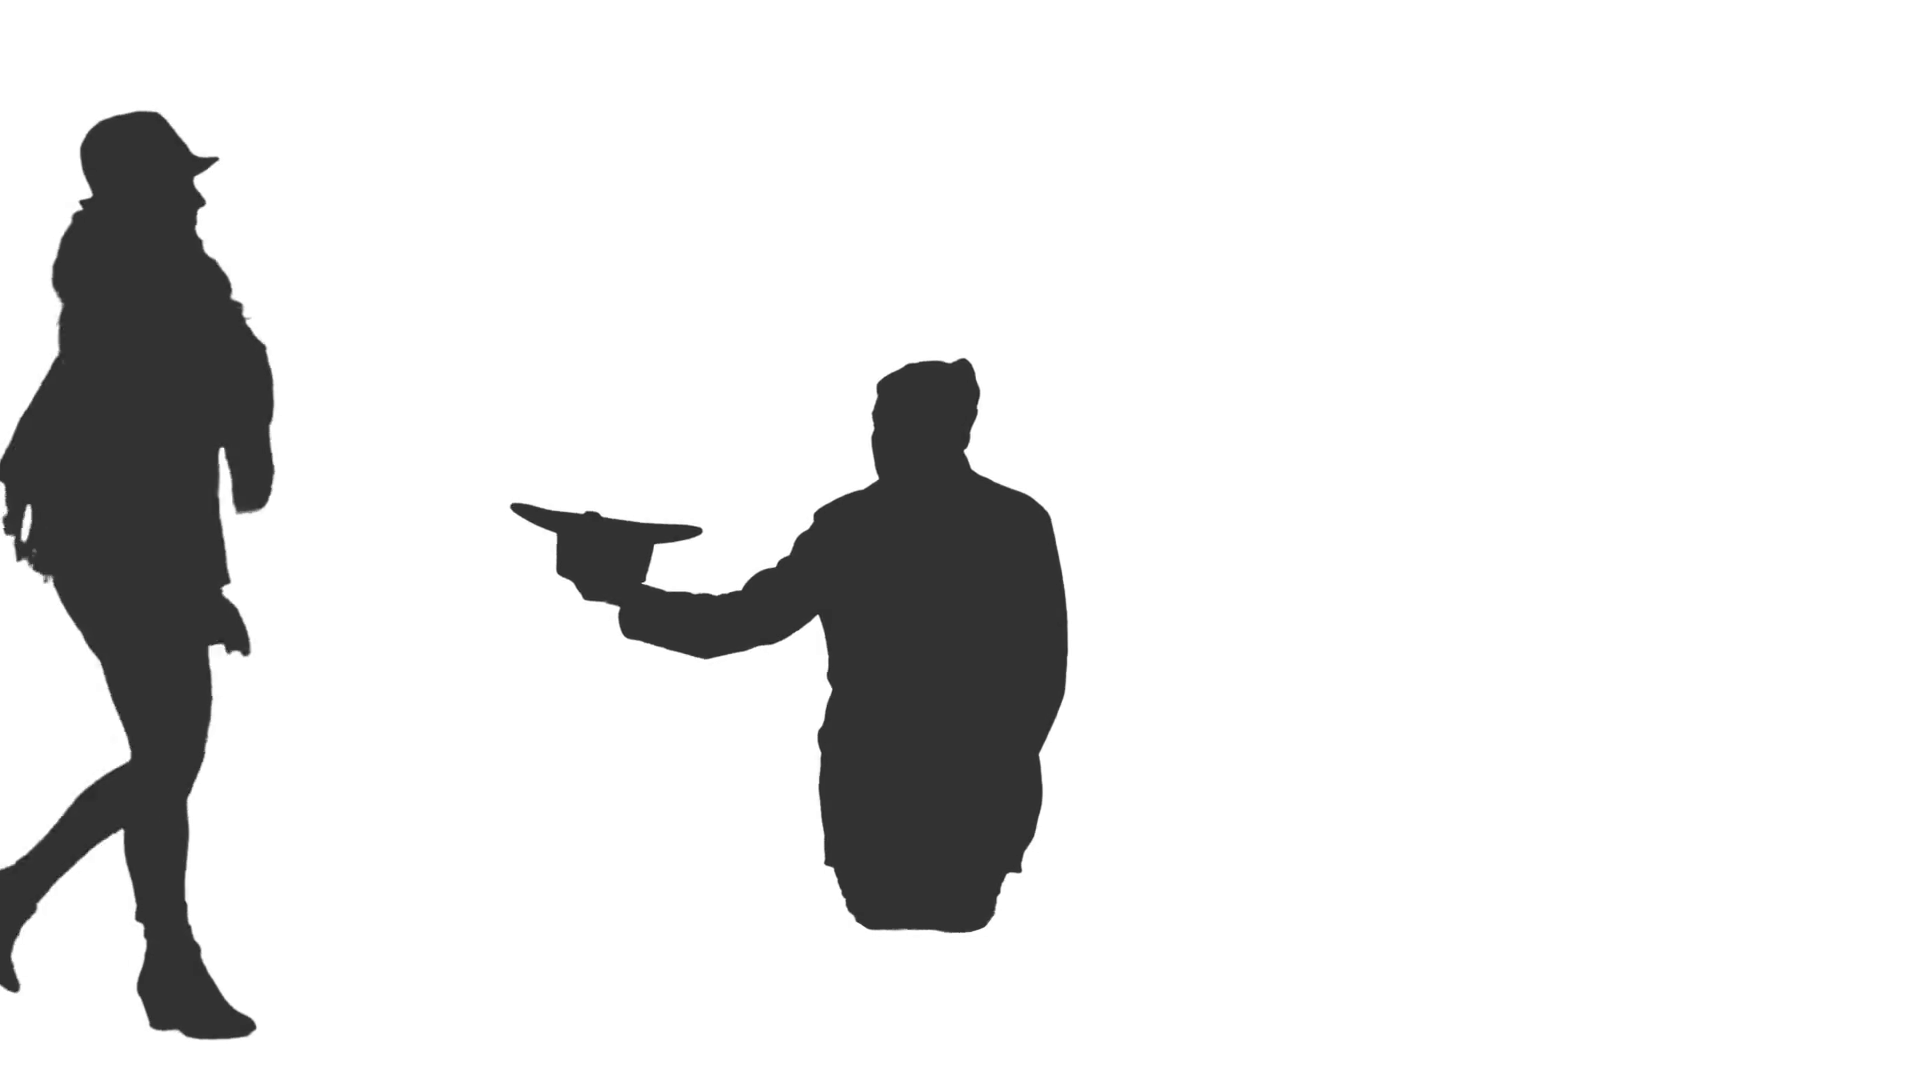 1920x1080 Silhouette Of Walking People And Homeless Man Begging On